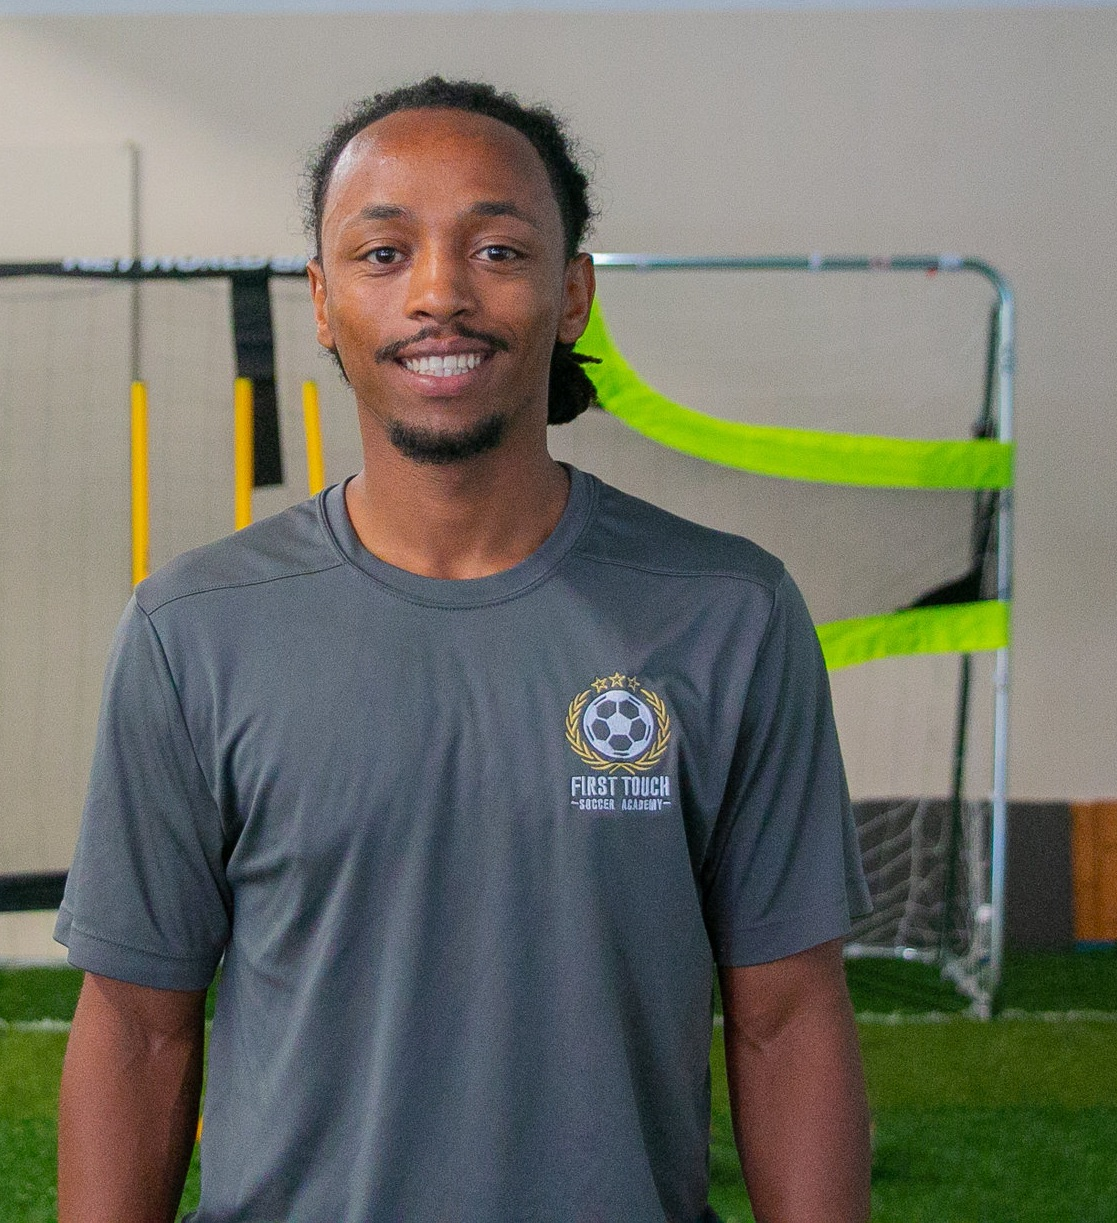 Meet Head Coach Teddy Vickers - Teddy's passion for soccer began in his childhood, playing with friends of all ages in the streets of Addis Ababa, Ethiopia. After moving to Texas, Teddy was chosen to train with the Houston Dynamo Youth Academy and participated in an elite summer program with the Houston Texans SC in Europe where he was selected as MVP during multiple games in Spain and England.Teddy began his collegiate soccer career as an attacking midfielder at Carson-Newman University, participating in their conference-winning season which won them a place in the NCAA division finals. He moved to Austin to play with the Concordia University Tornados during their historic first winning season in school history.Teddy has been coaching soccer since middle school, volunteering with the local youth leagues as a young boy and more recently coaching seven seasons with Austin's Lonestar Soccer League. His proudest moment as a coach was watching his under-10 team win the Lonestar Spring Shootout in 2017.Book a session with Teddy ➝